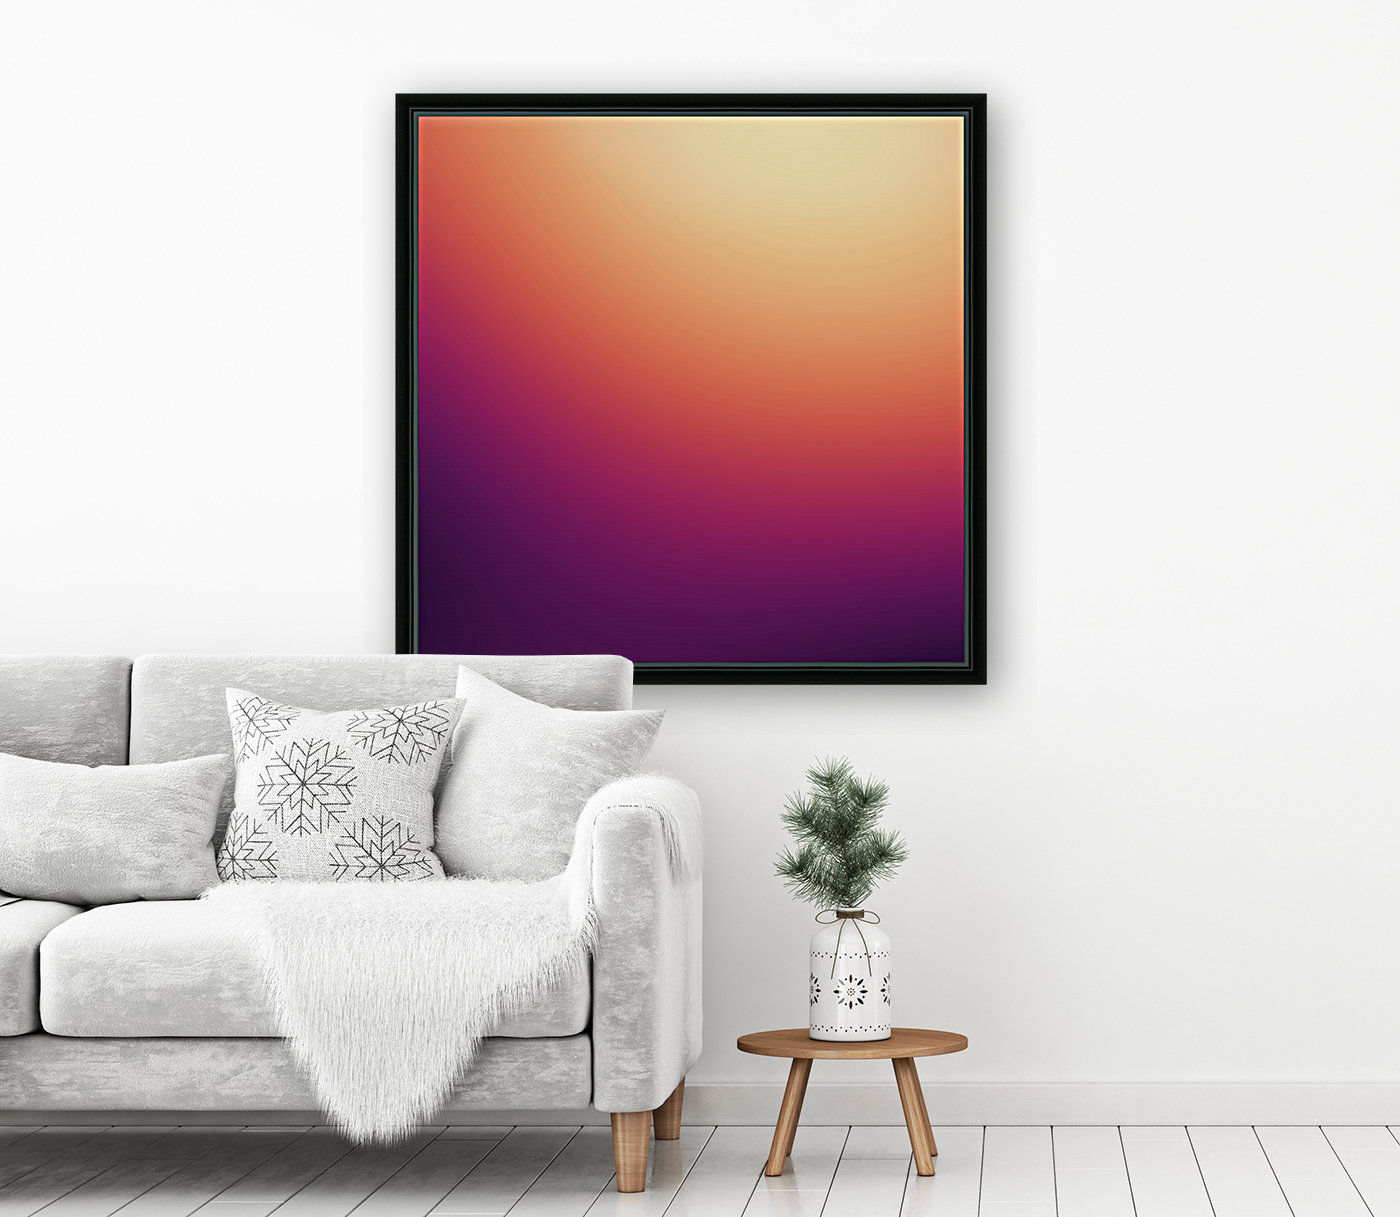 COOL DESIGN (95)_1561028569.7209 with Floating Frame